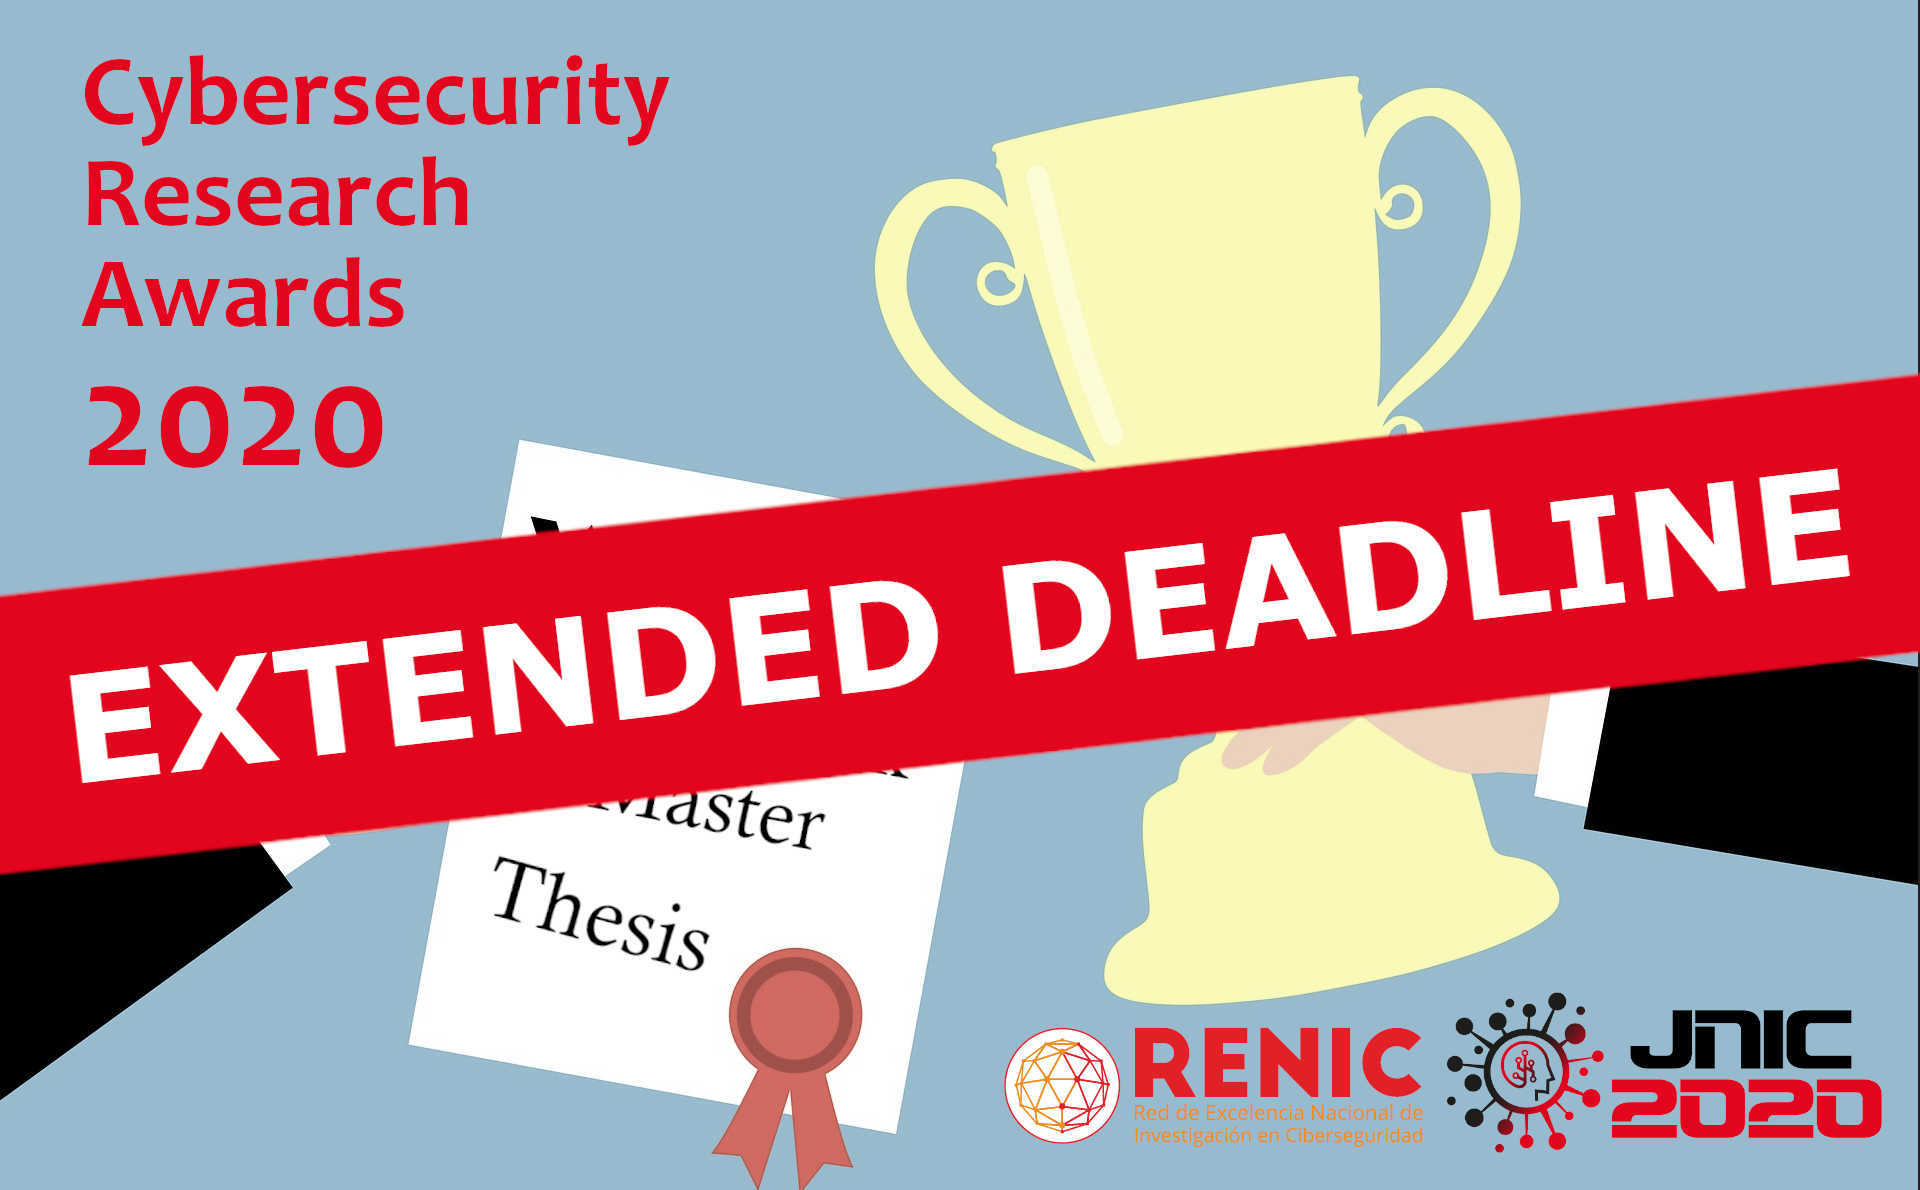 Deadline extended for Cybersecurity Research Awards 2020